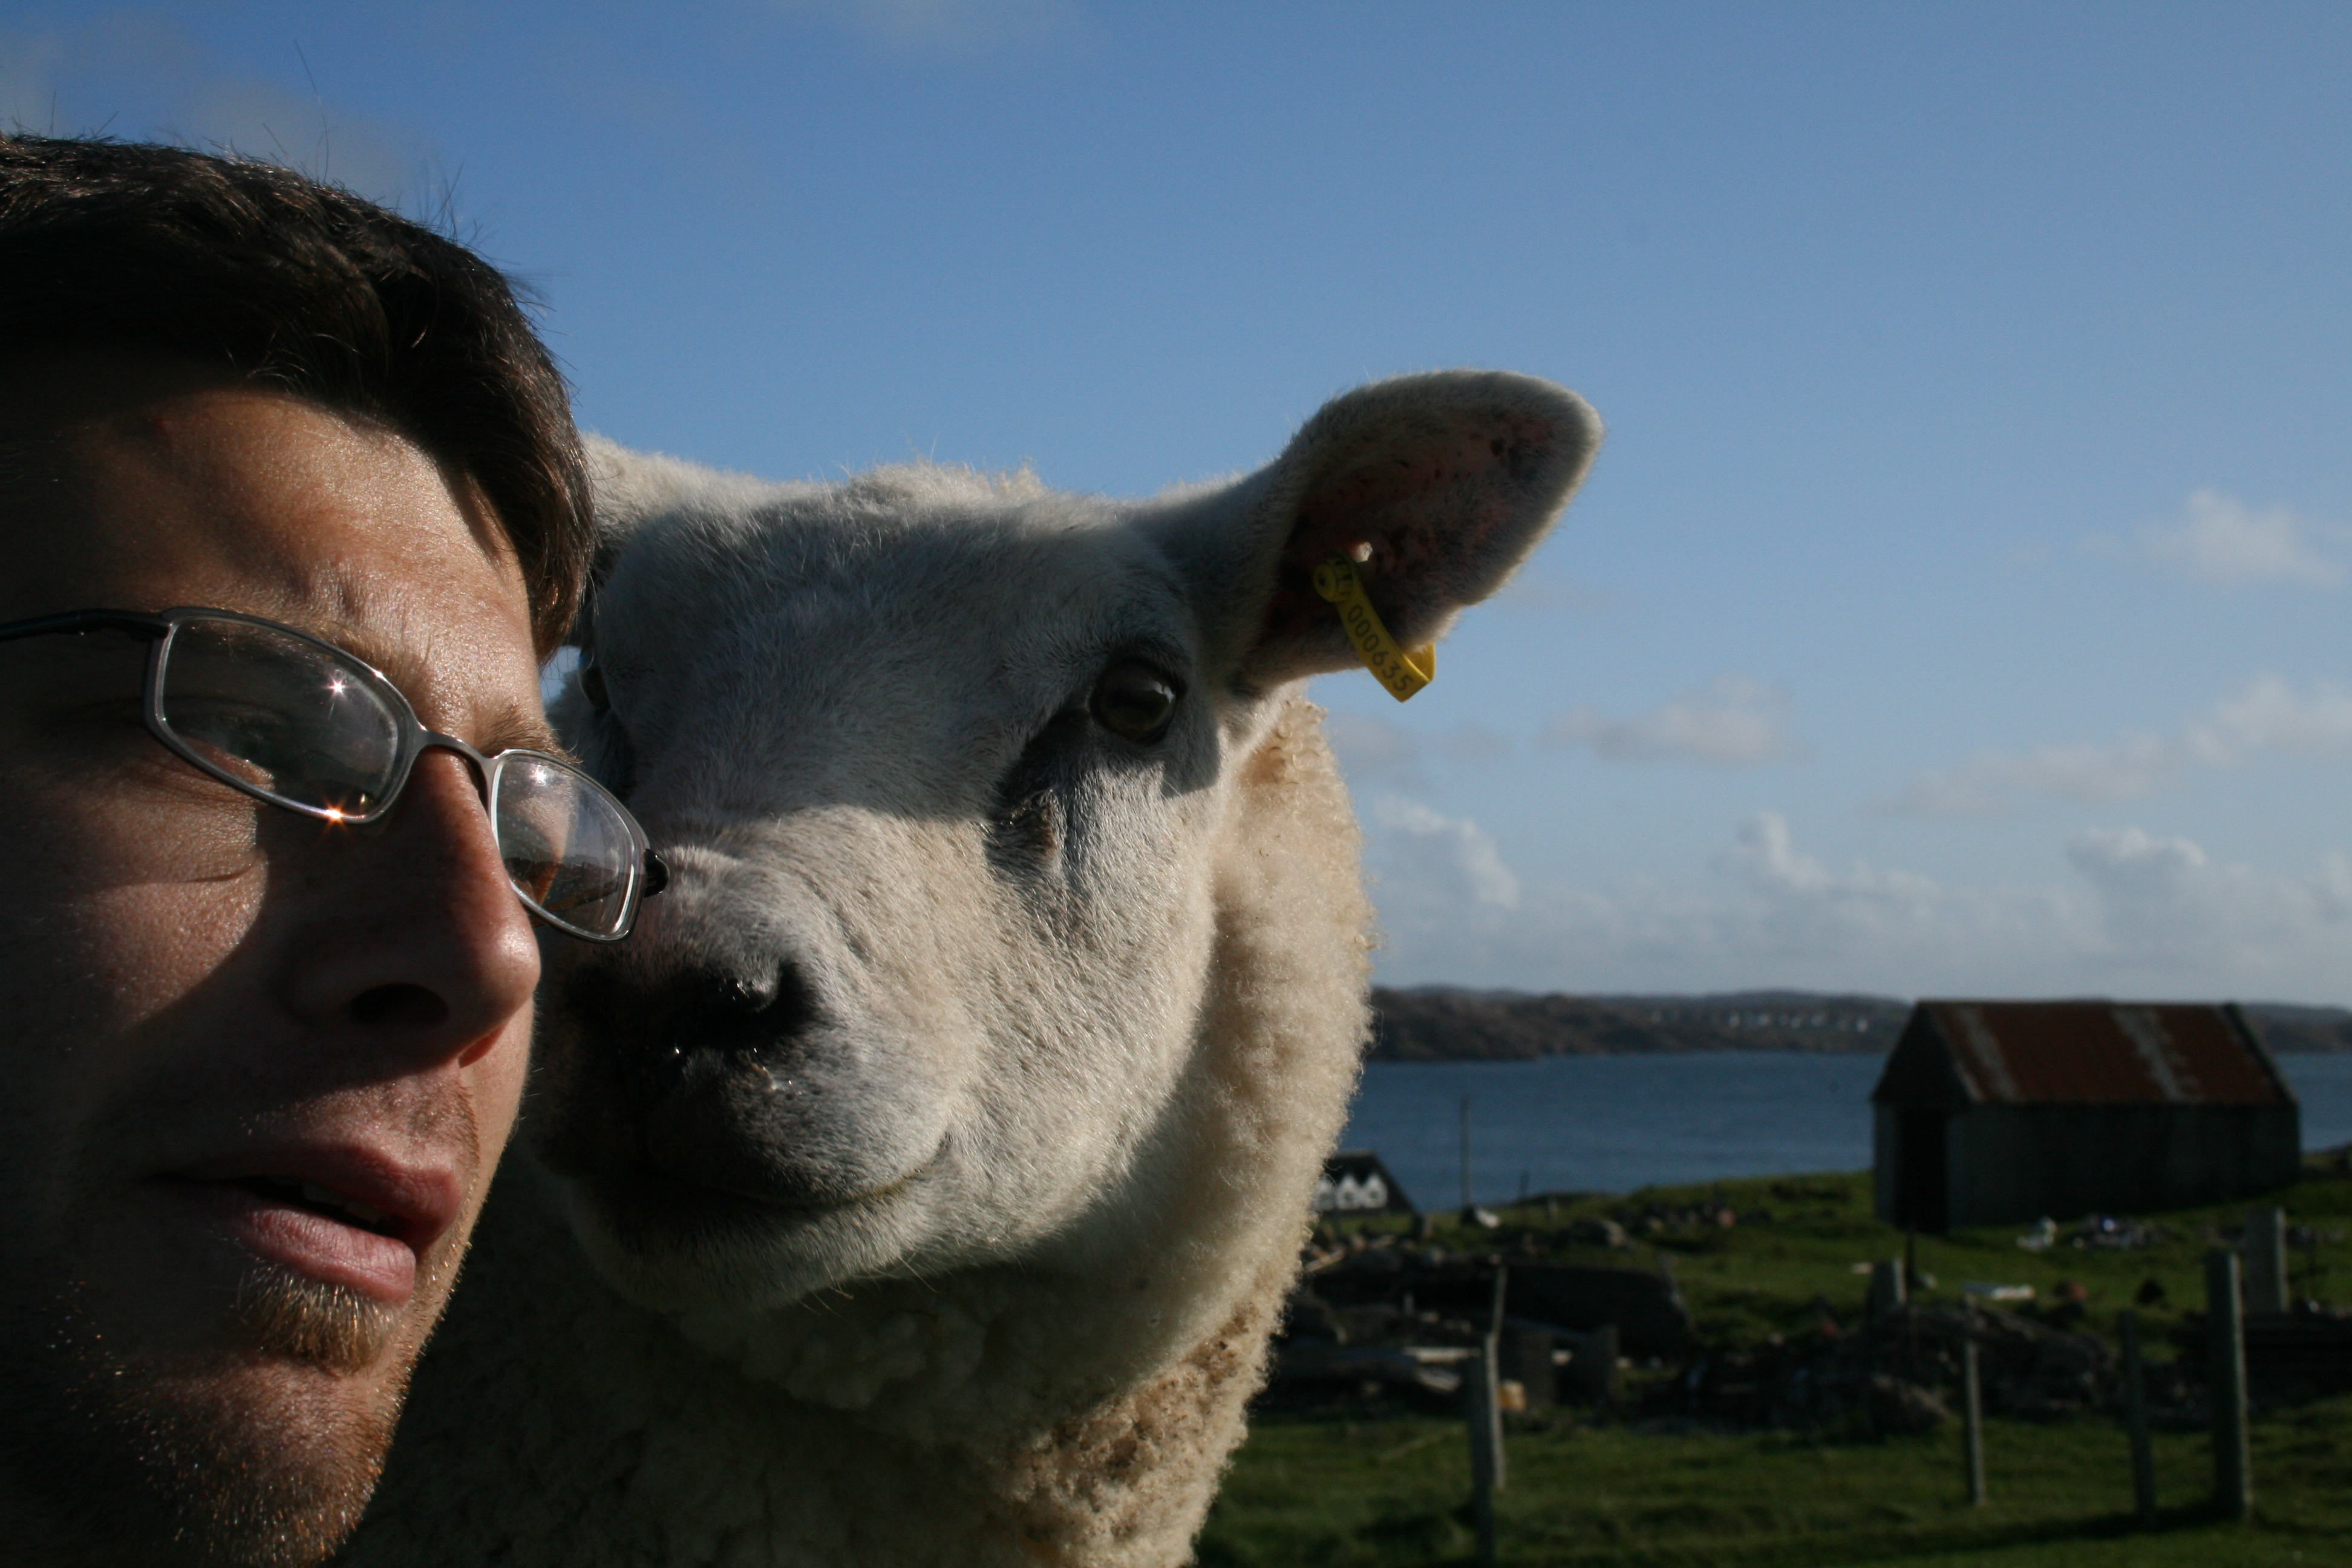 I was scared that this sheep was going to rip my head off.